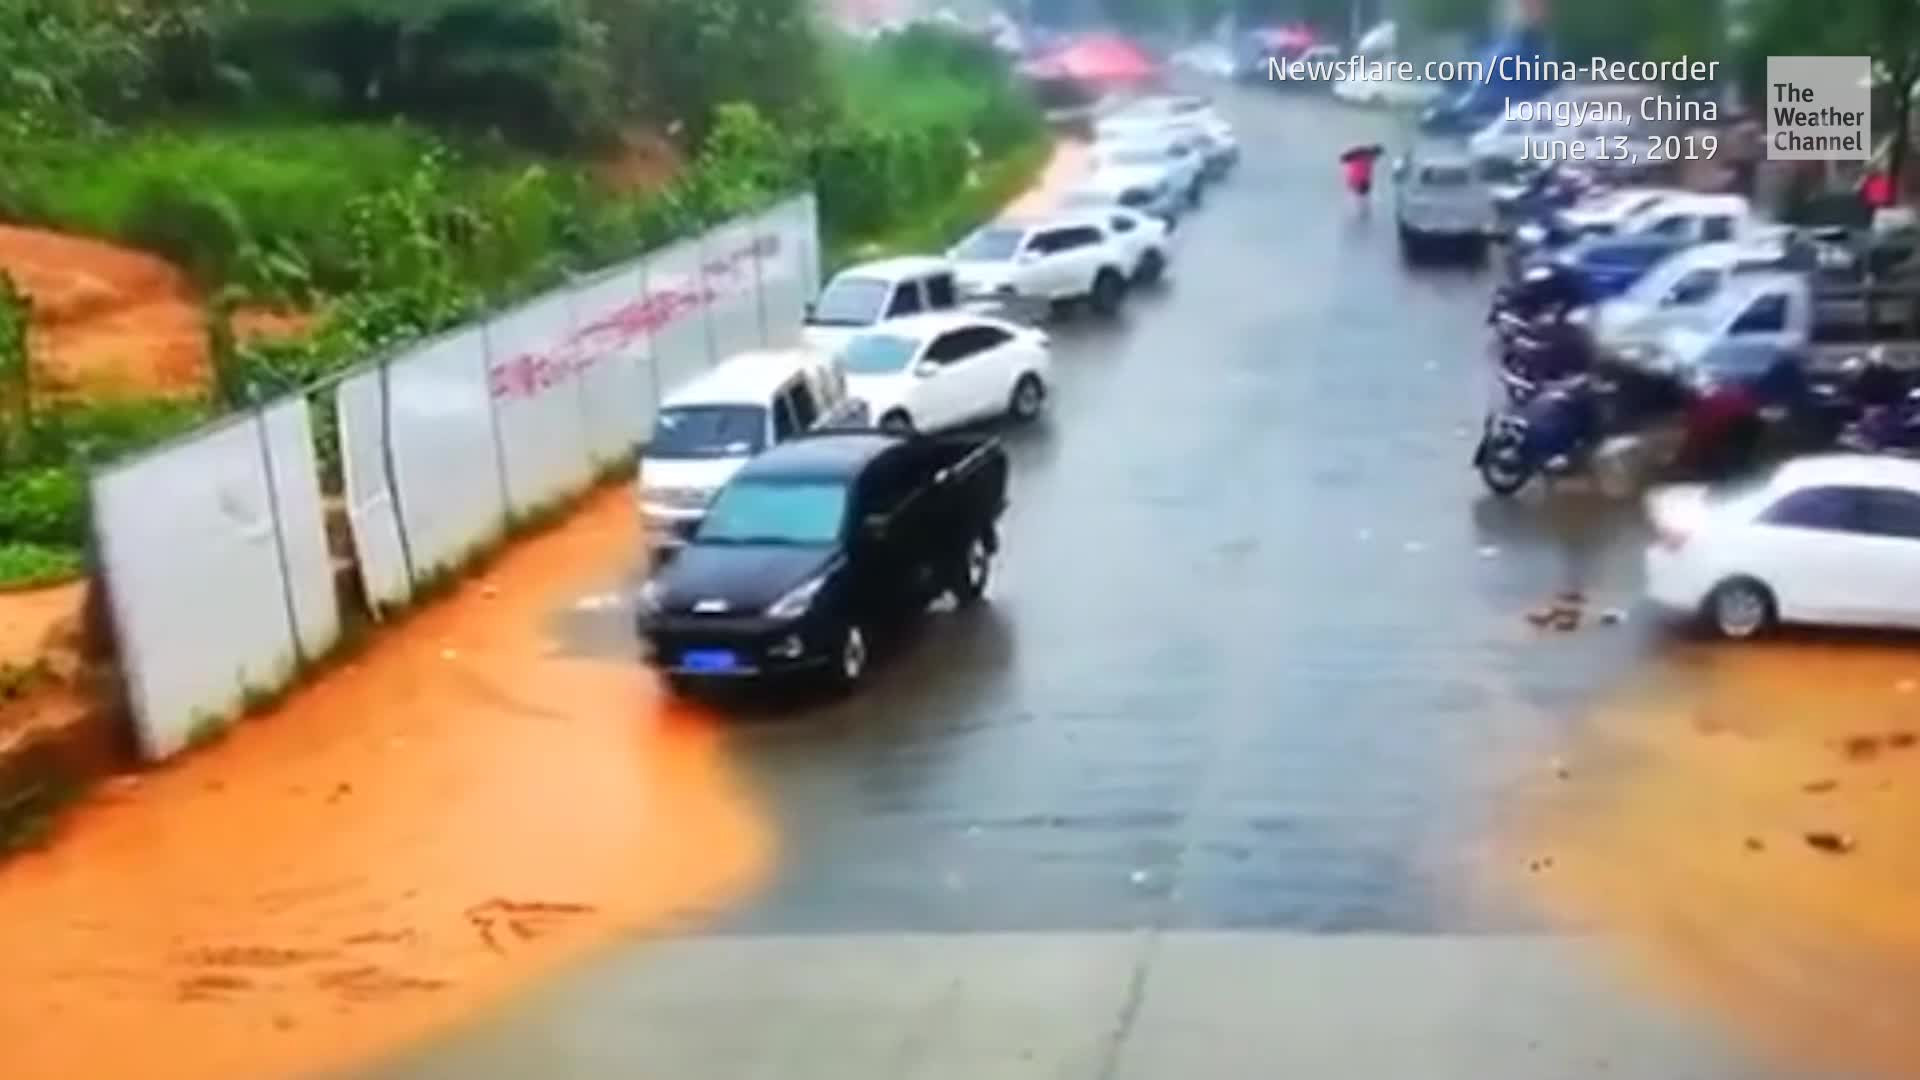 Heavy rain caused a hillside to crumble, covering a street full of parked cars.